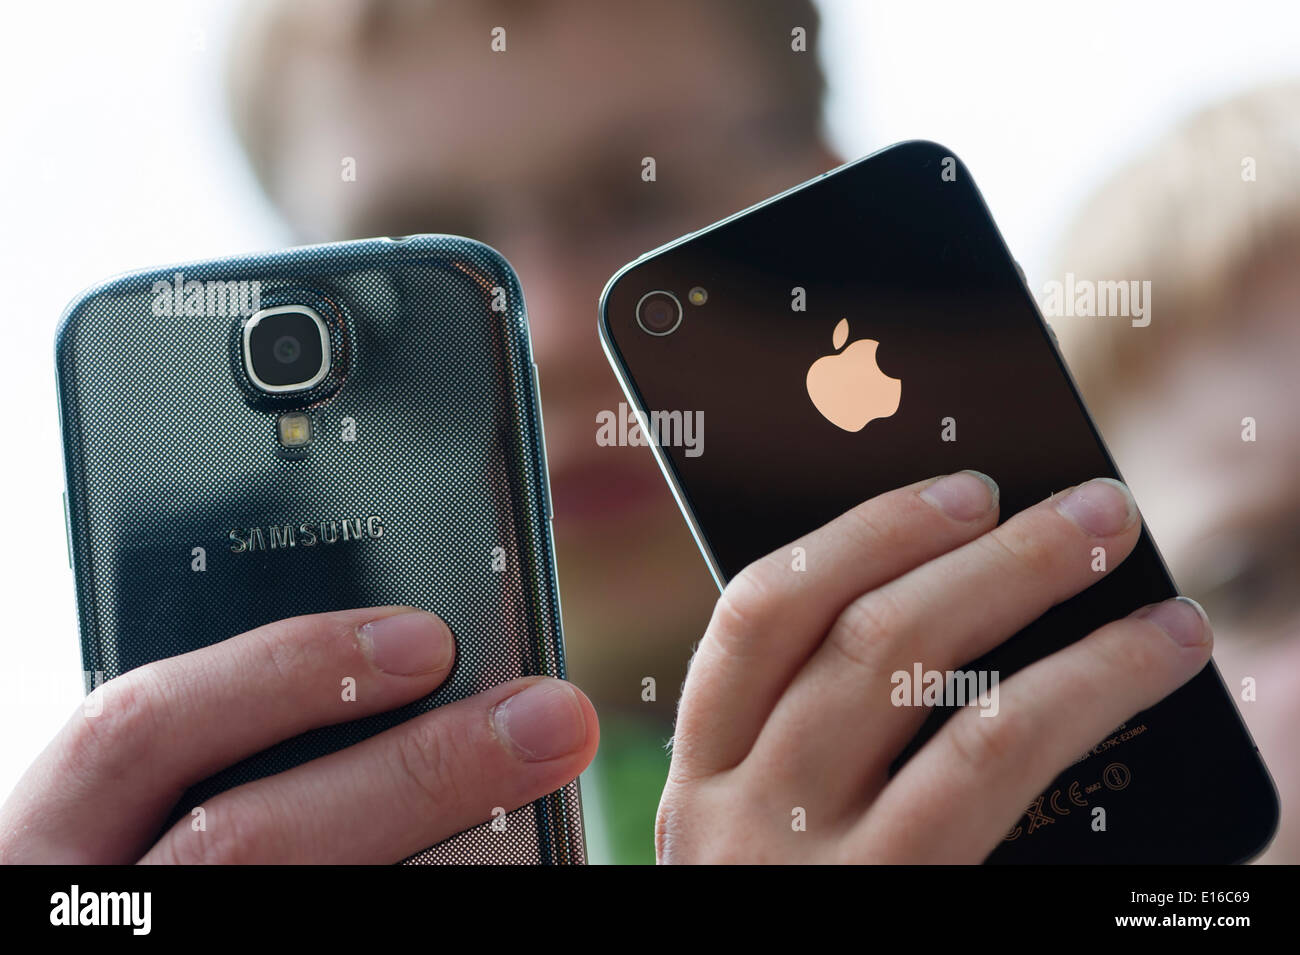 Two teenagers are posing with their Samsung Galaxy S4 (left) and iPhone 4 smartphones. - Stock Image